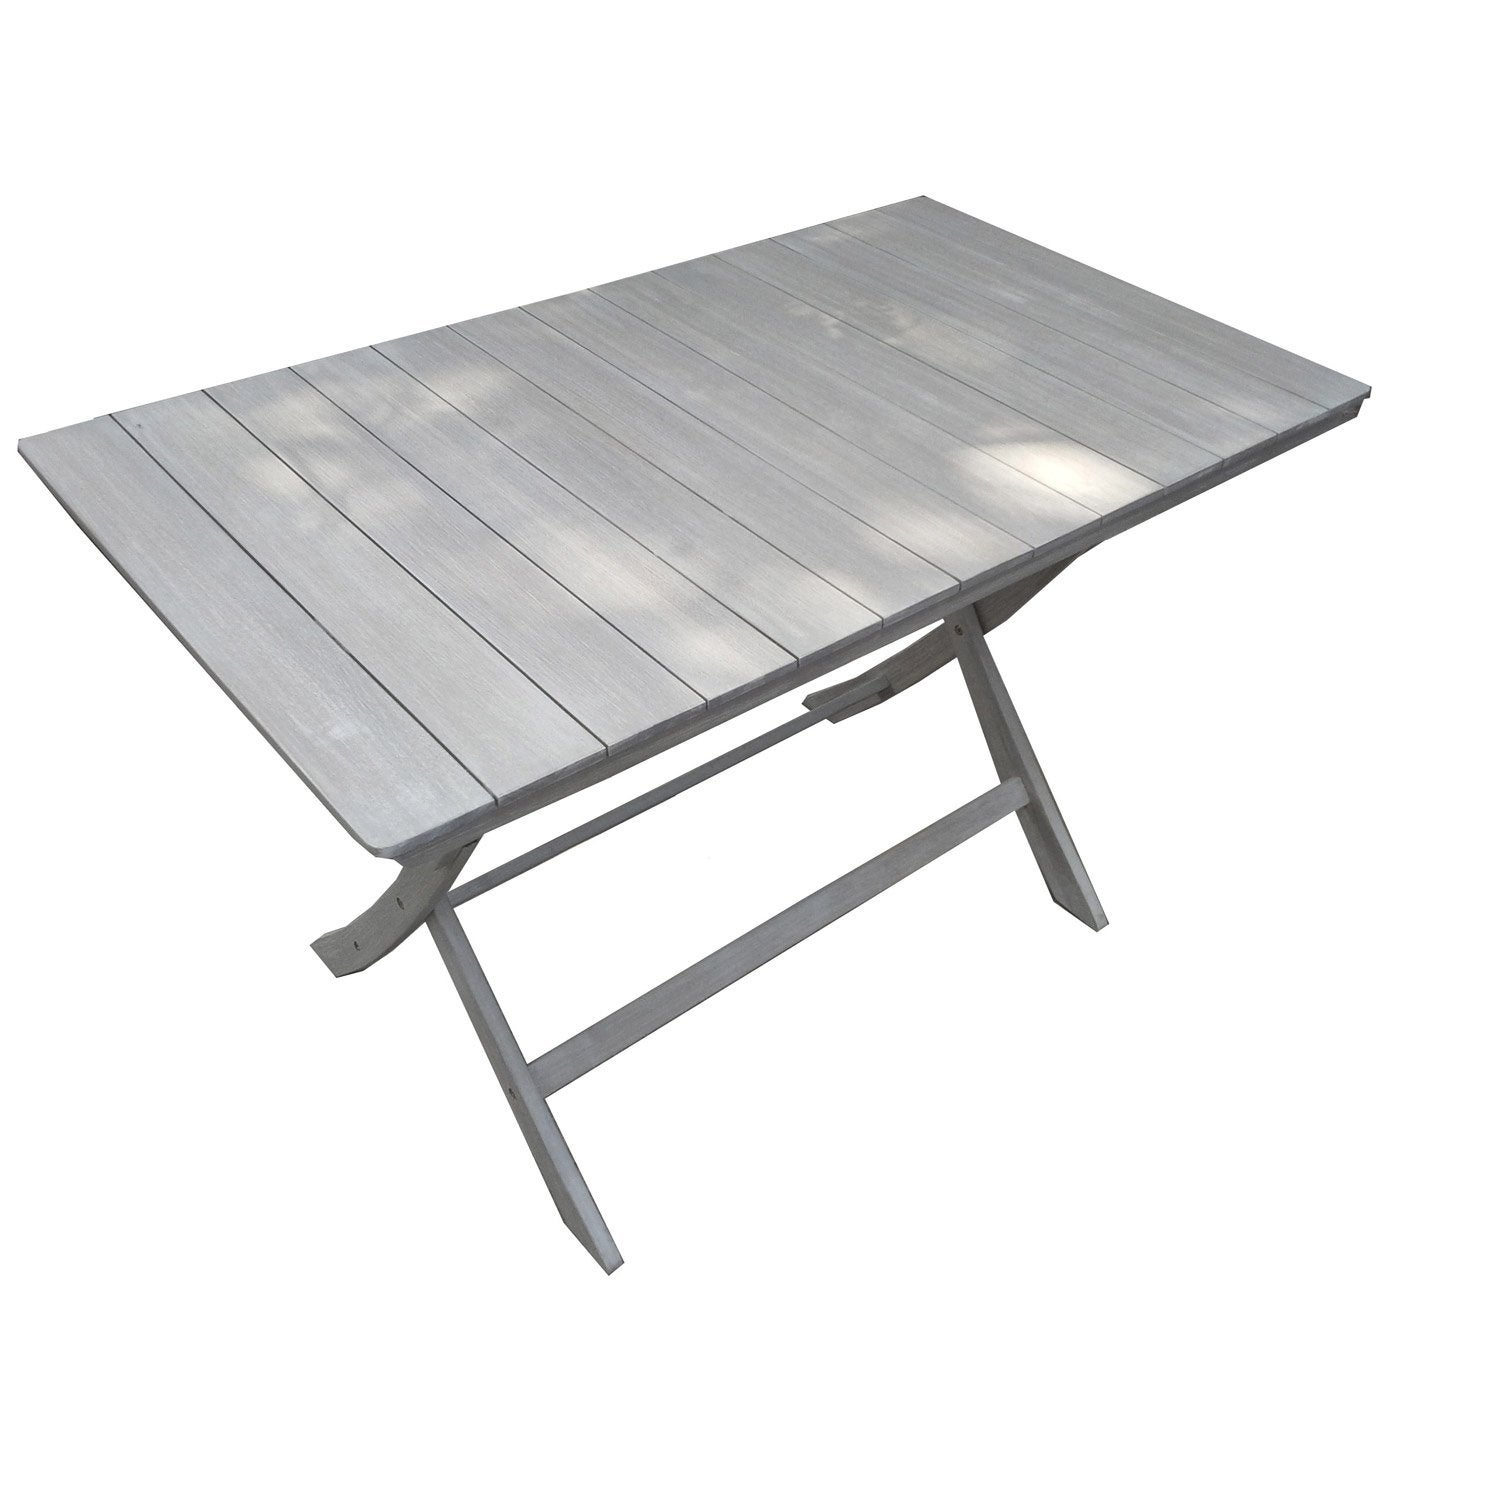 Table de jardin naterial portofino rectangulaire gris 4 personnes leroy merlin - Table de jardin octogonale ...